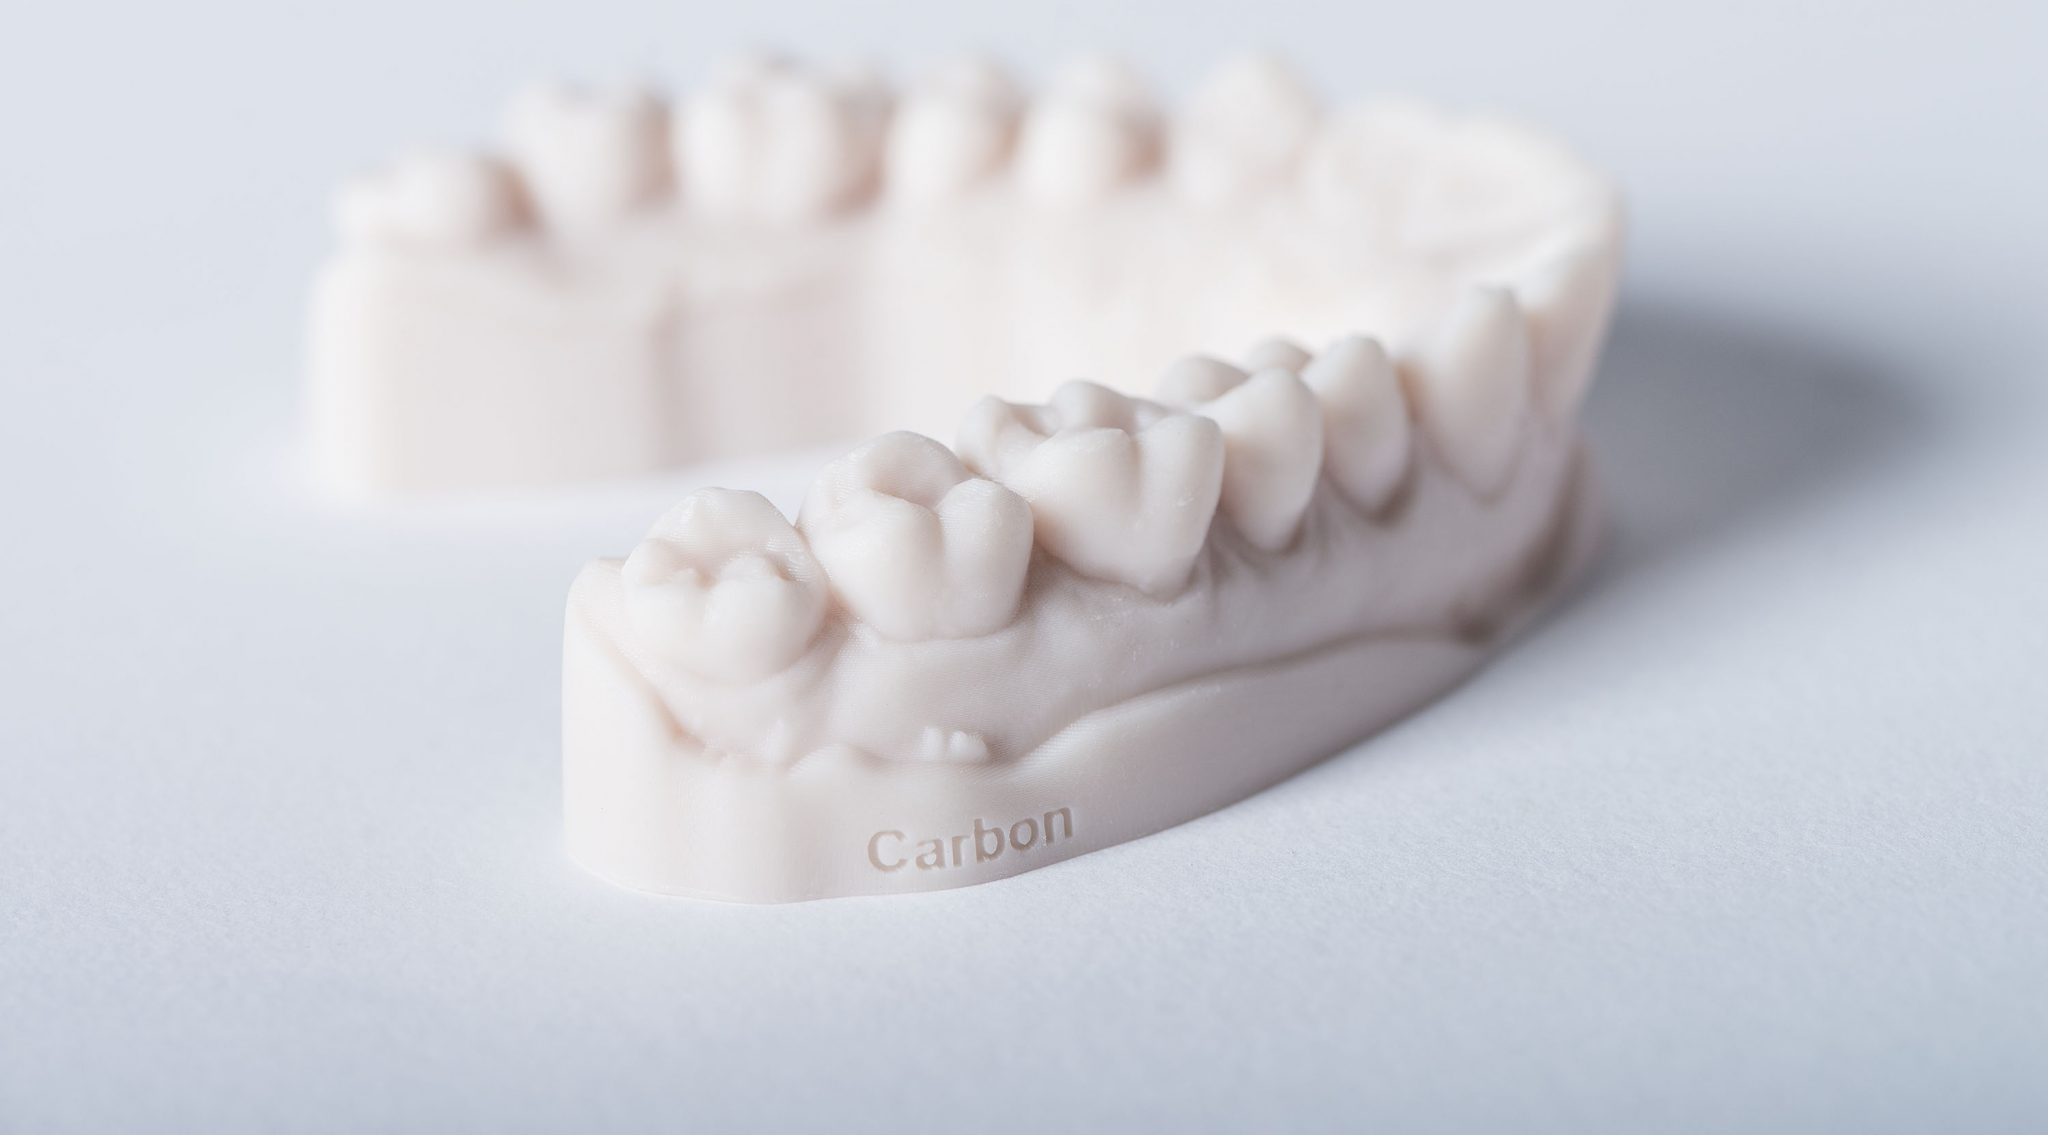 A 3D printed dental impression. Photo via Carbon